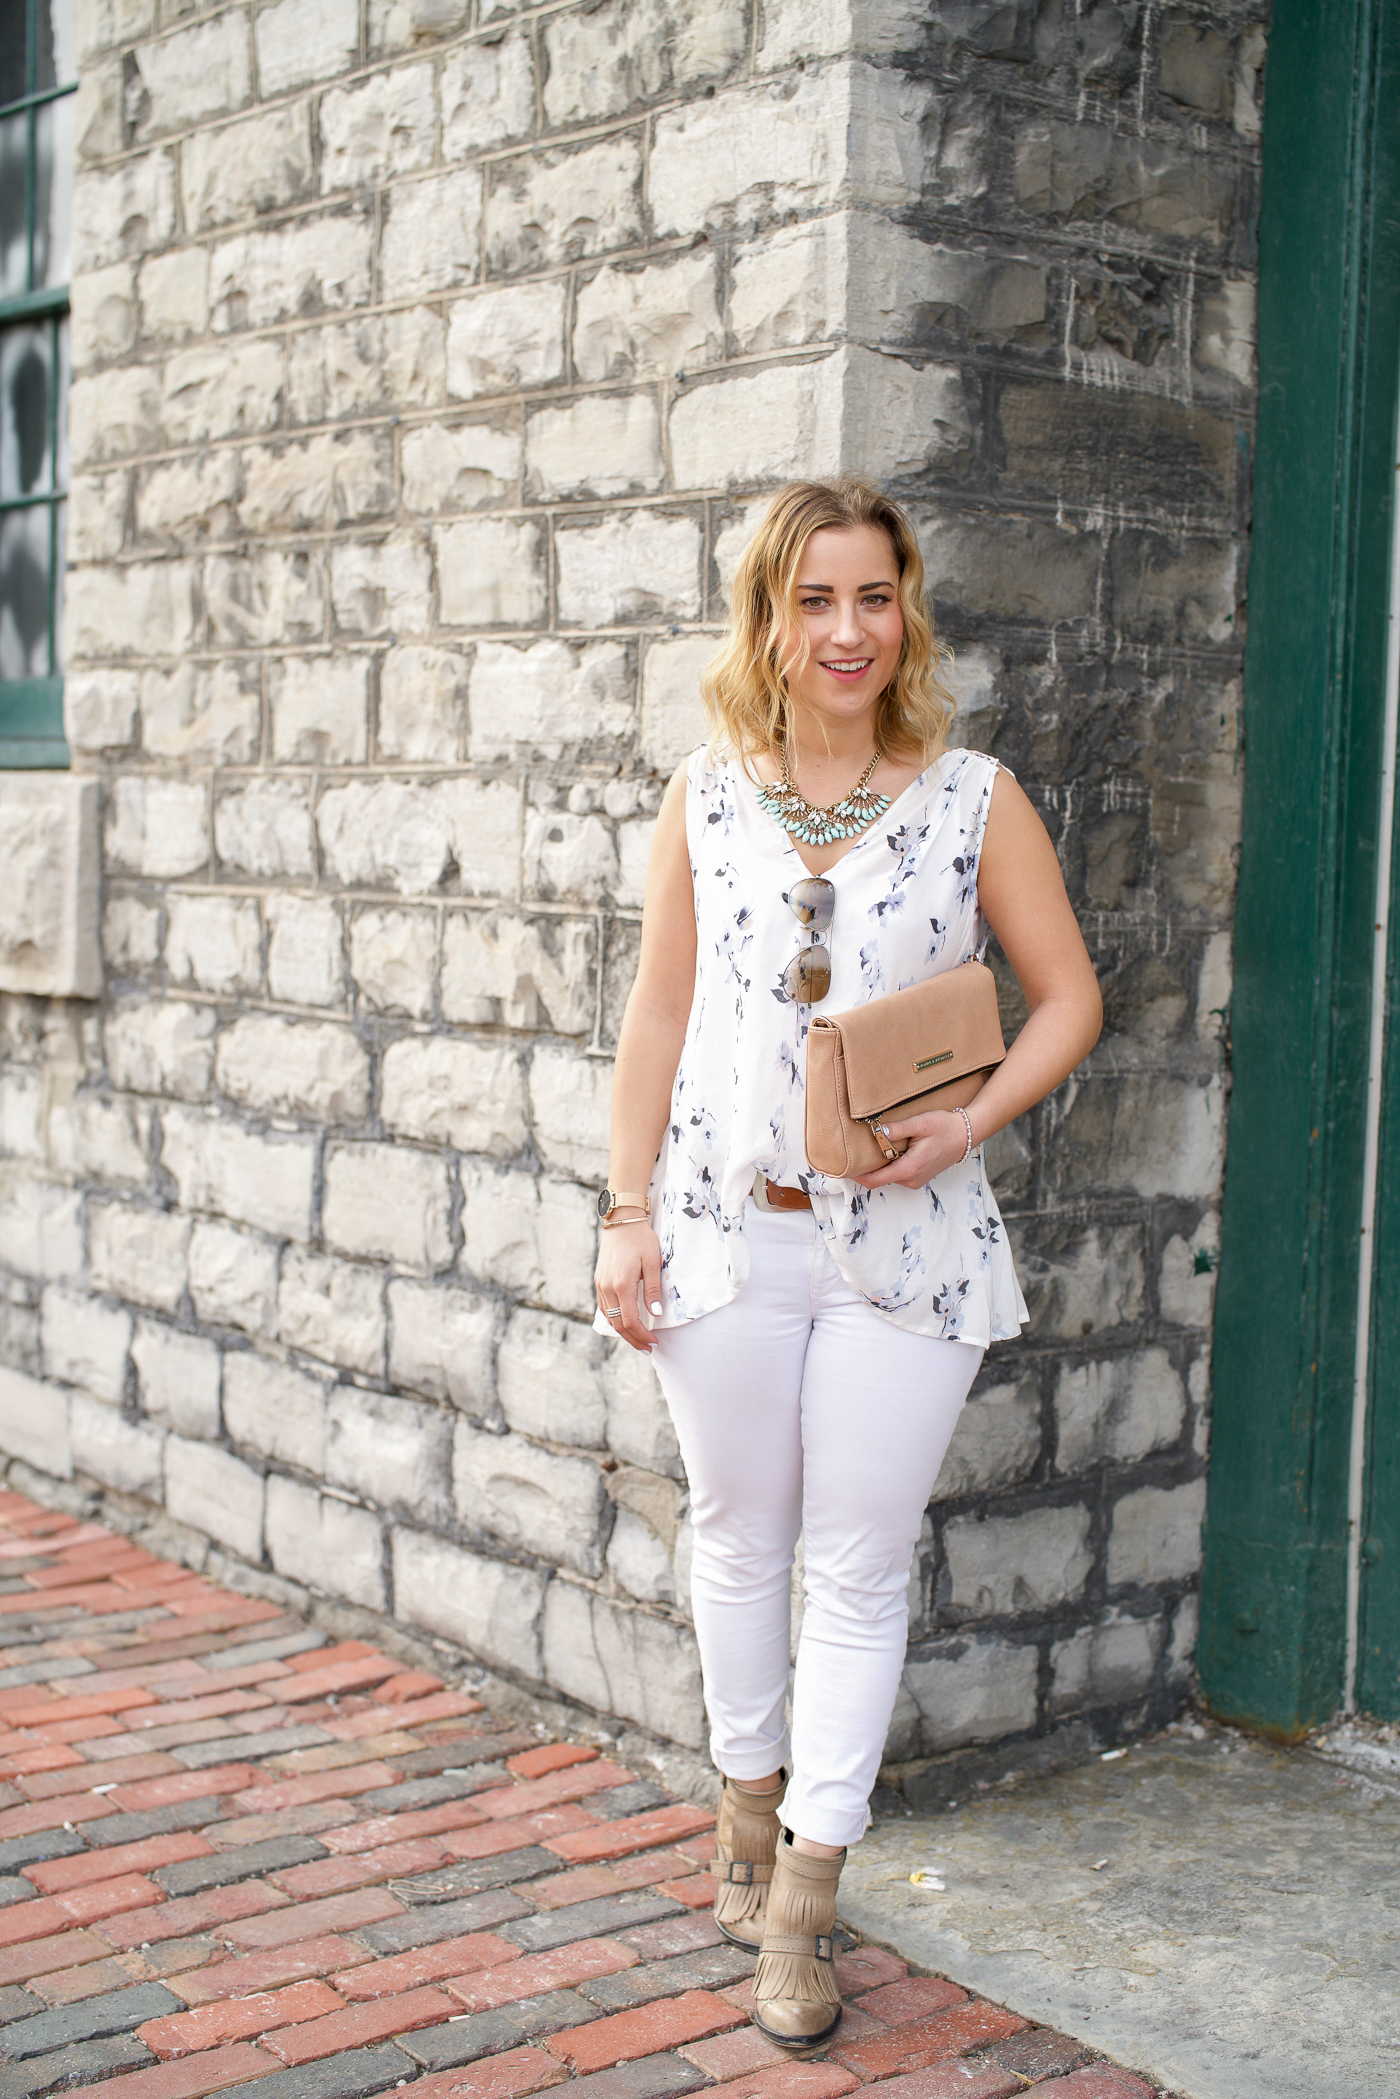 Jackie Goldhar is a Canadian fashion and lifestyle blogger, sharing a spring outfit with white jeans